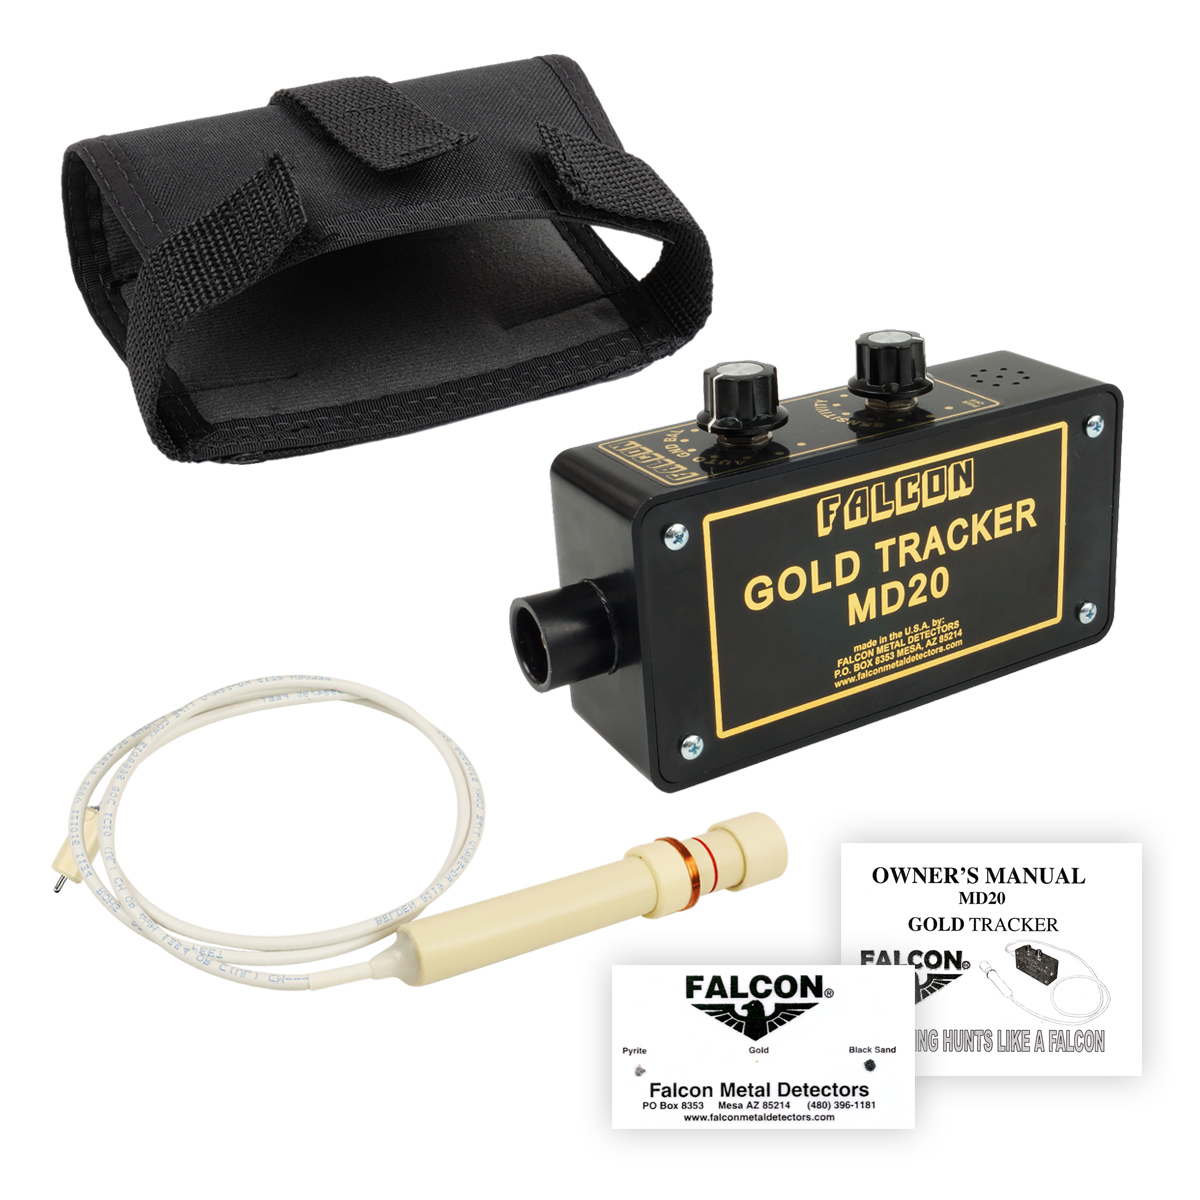 Falcon Gold Tracker MD20 Metal Detector 300kHz Probe with Belt Holster